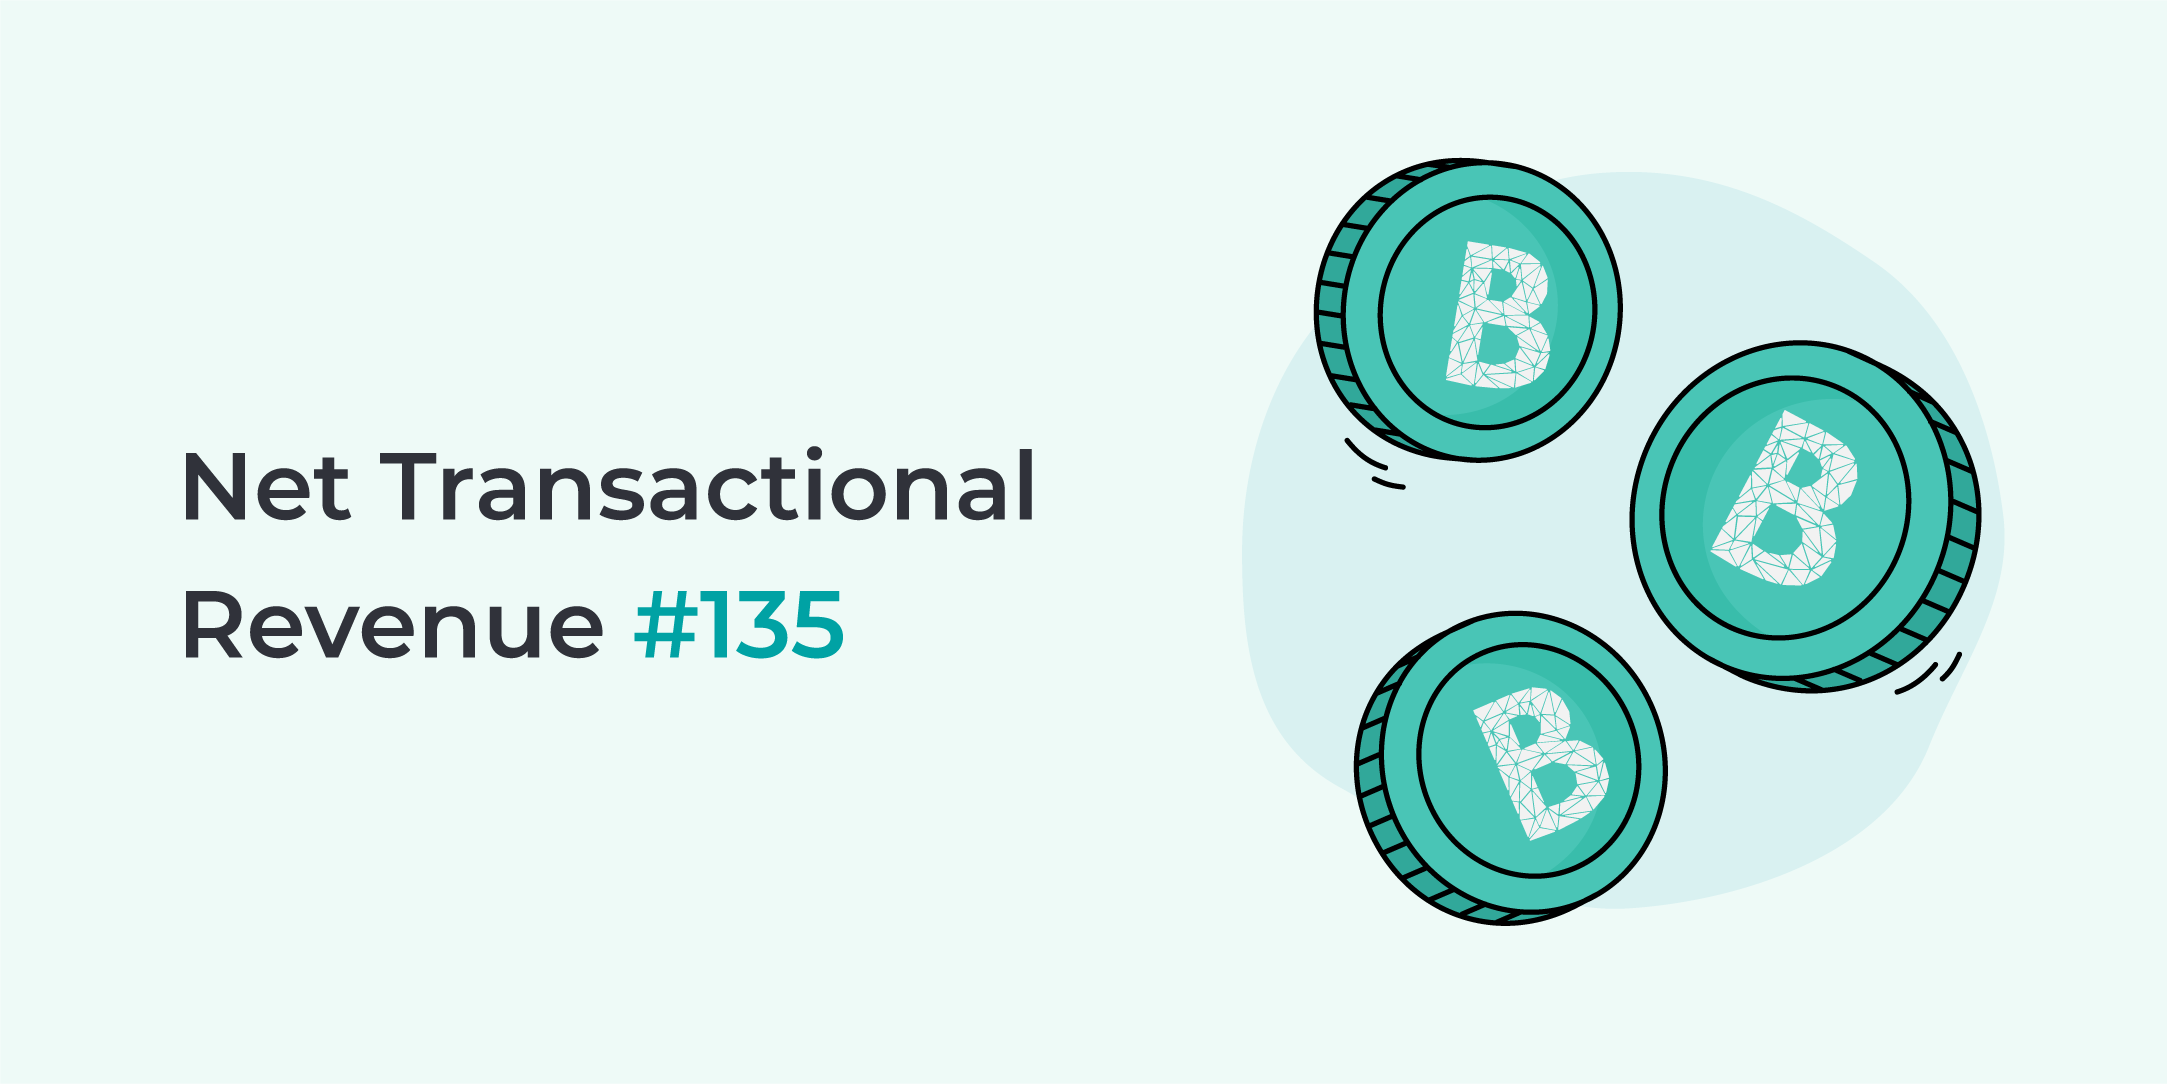 Bankera paid the 135th net transactional revenue